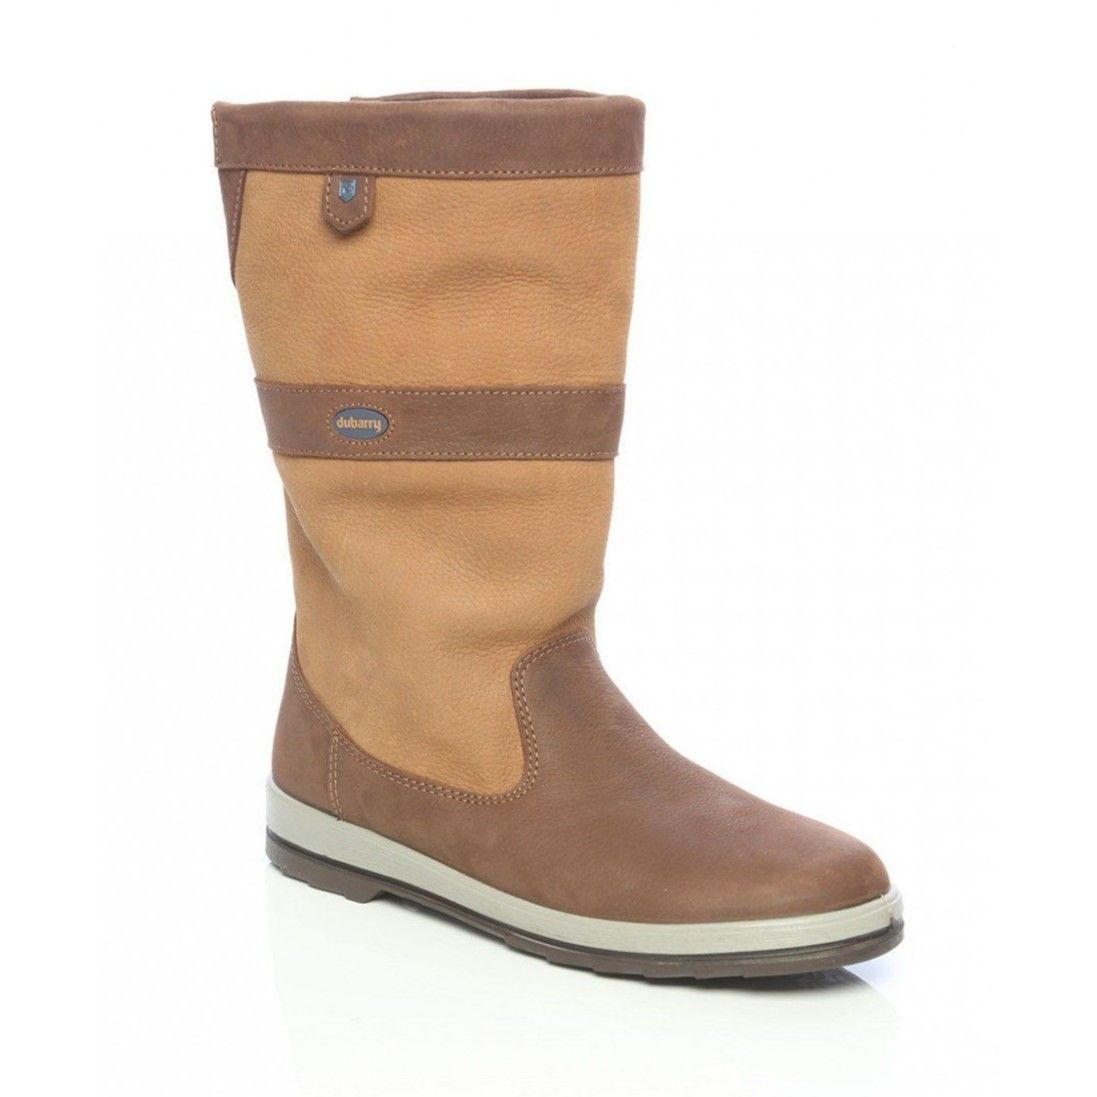 【New】Dubarry ULTIMA ExtraFit